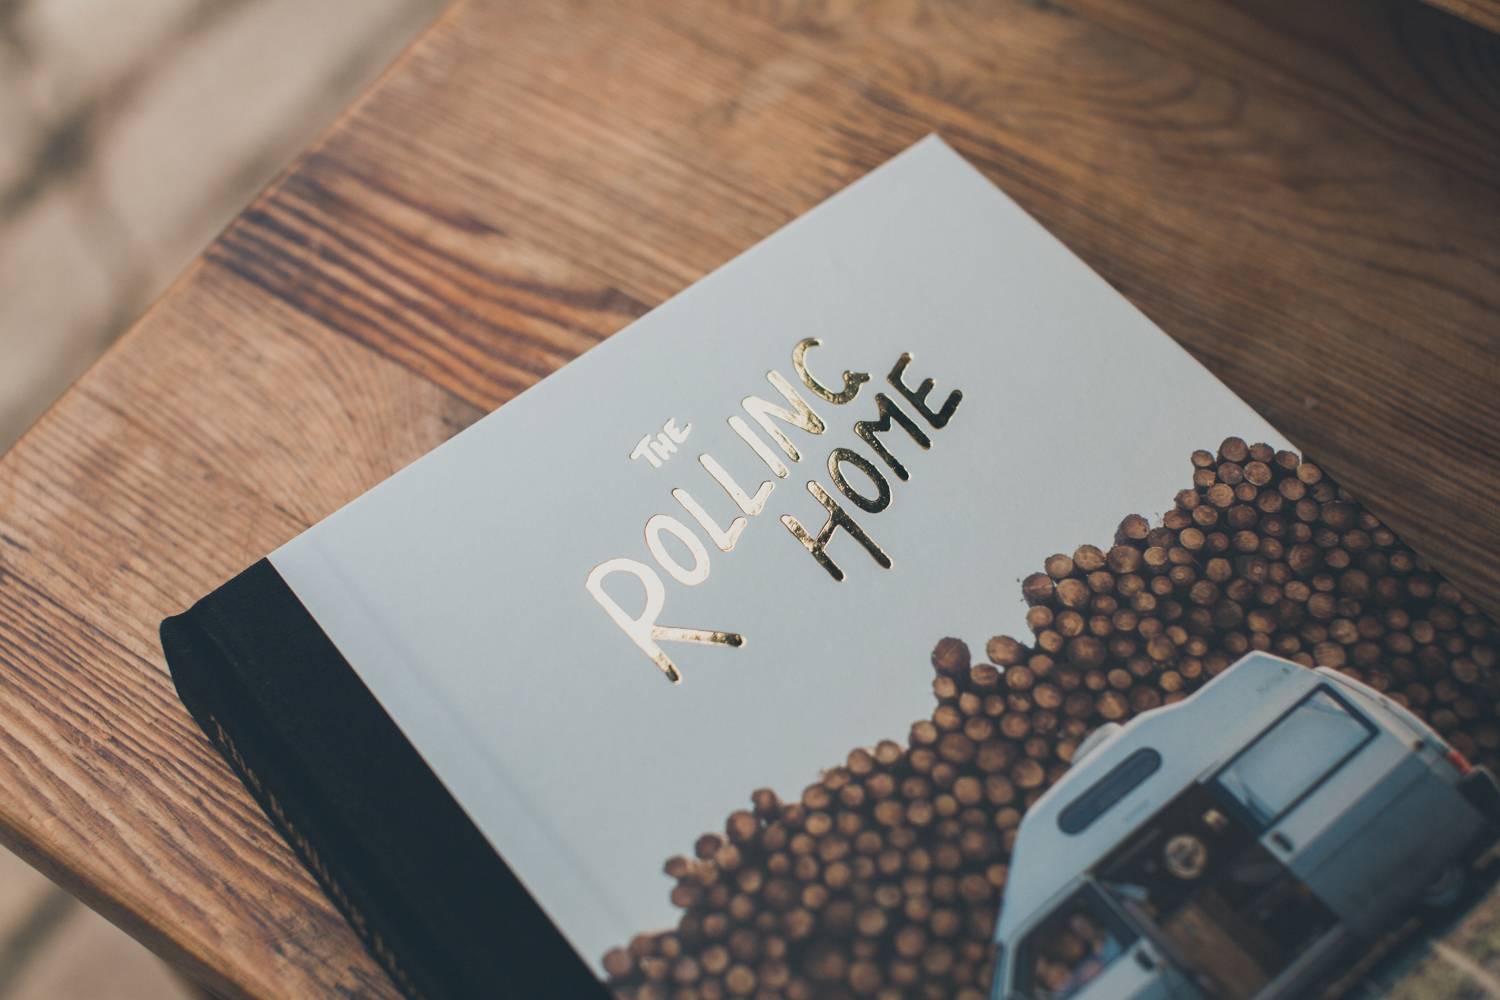 The Rolling Home Book